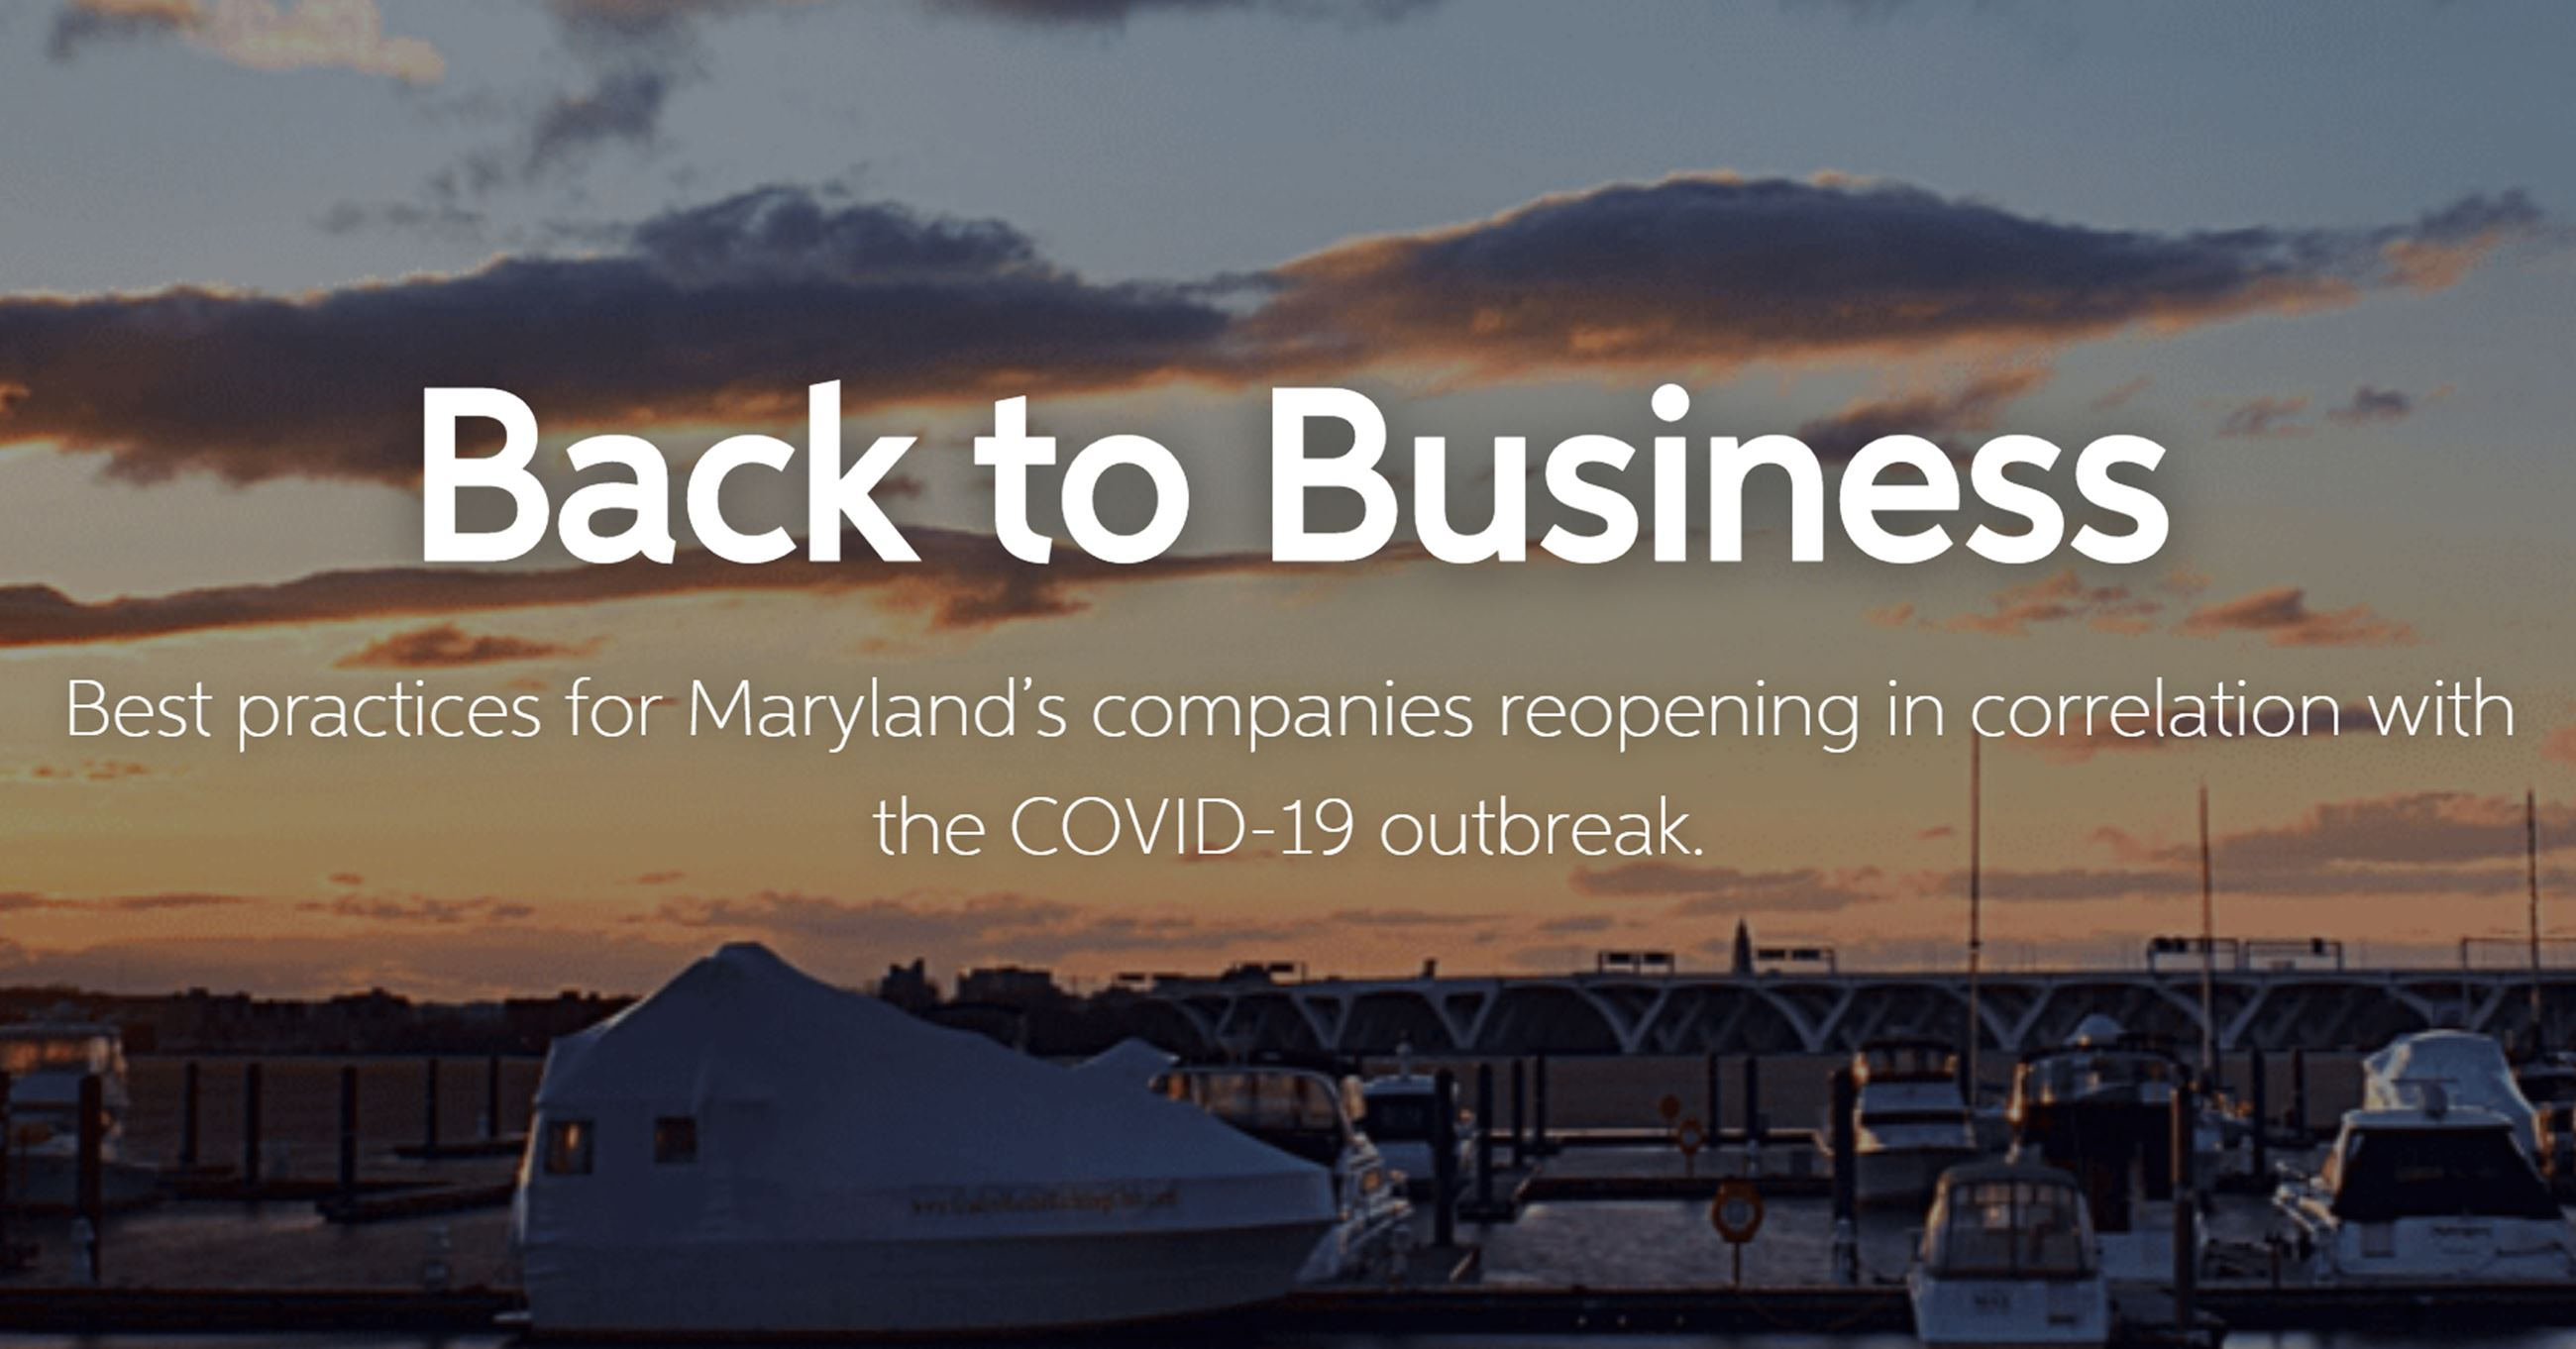 Back to Business reopening with COVID-19